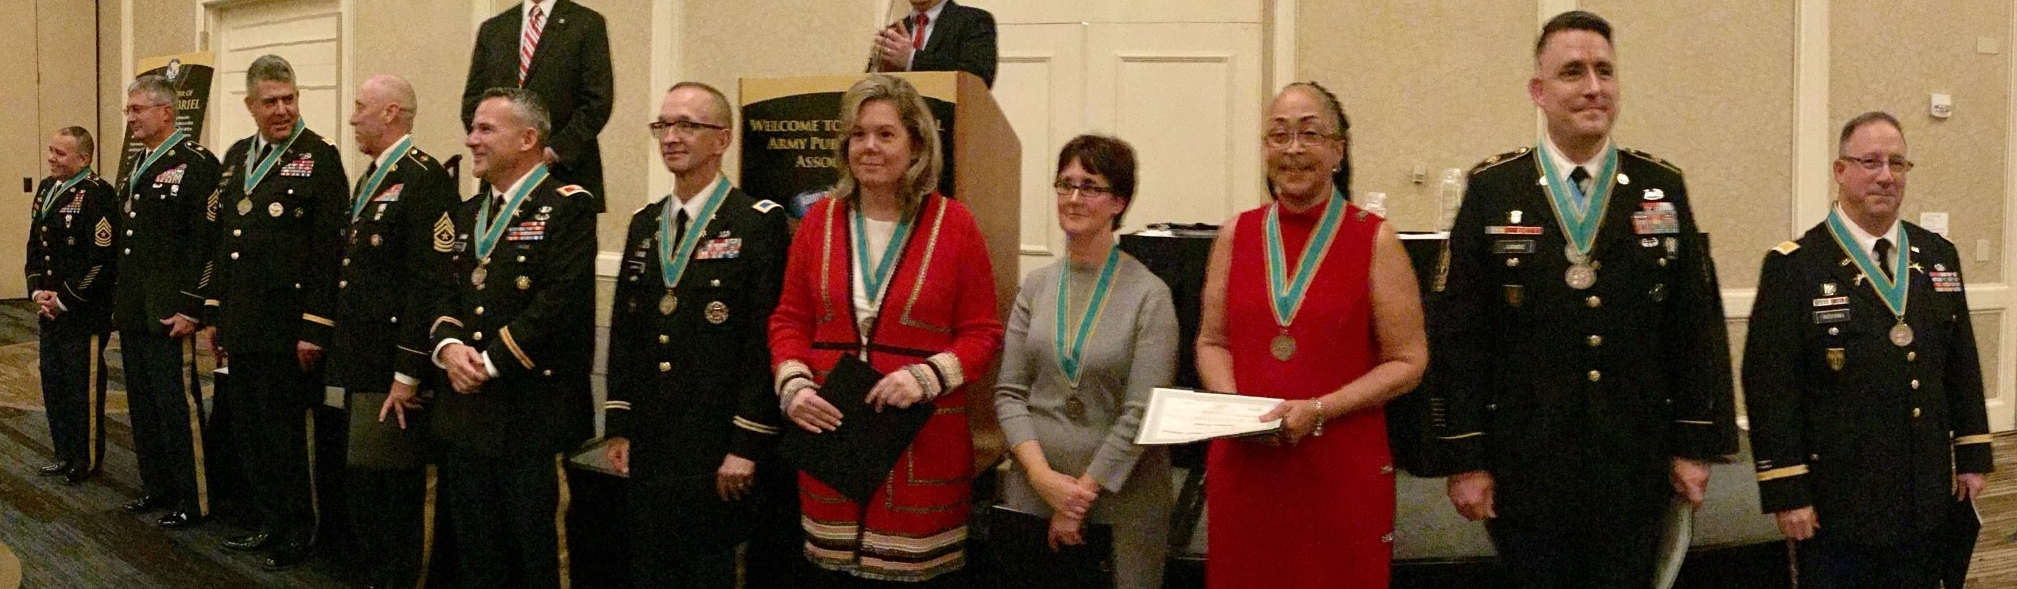 The first Public Affairs professionals to be honored with the Military Order of Saint Gabriel were inducted into its Ancient Order during the annual APAA Awards and Recognition Dinner in Alexandria, Virginia,Nov. 15, 2017 (not pictured: Col. Amy Hannah).